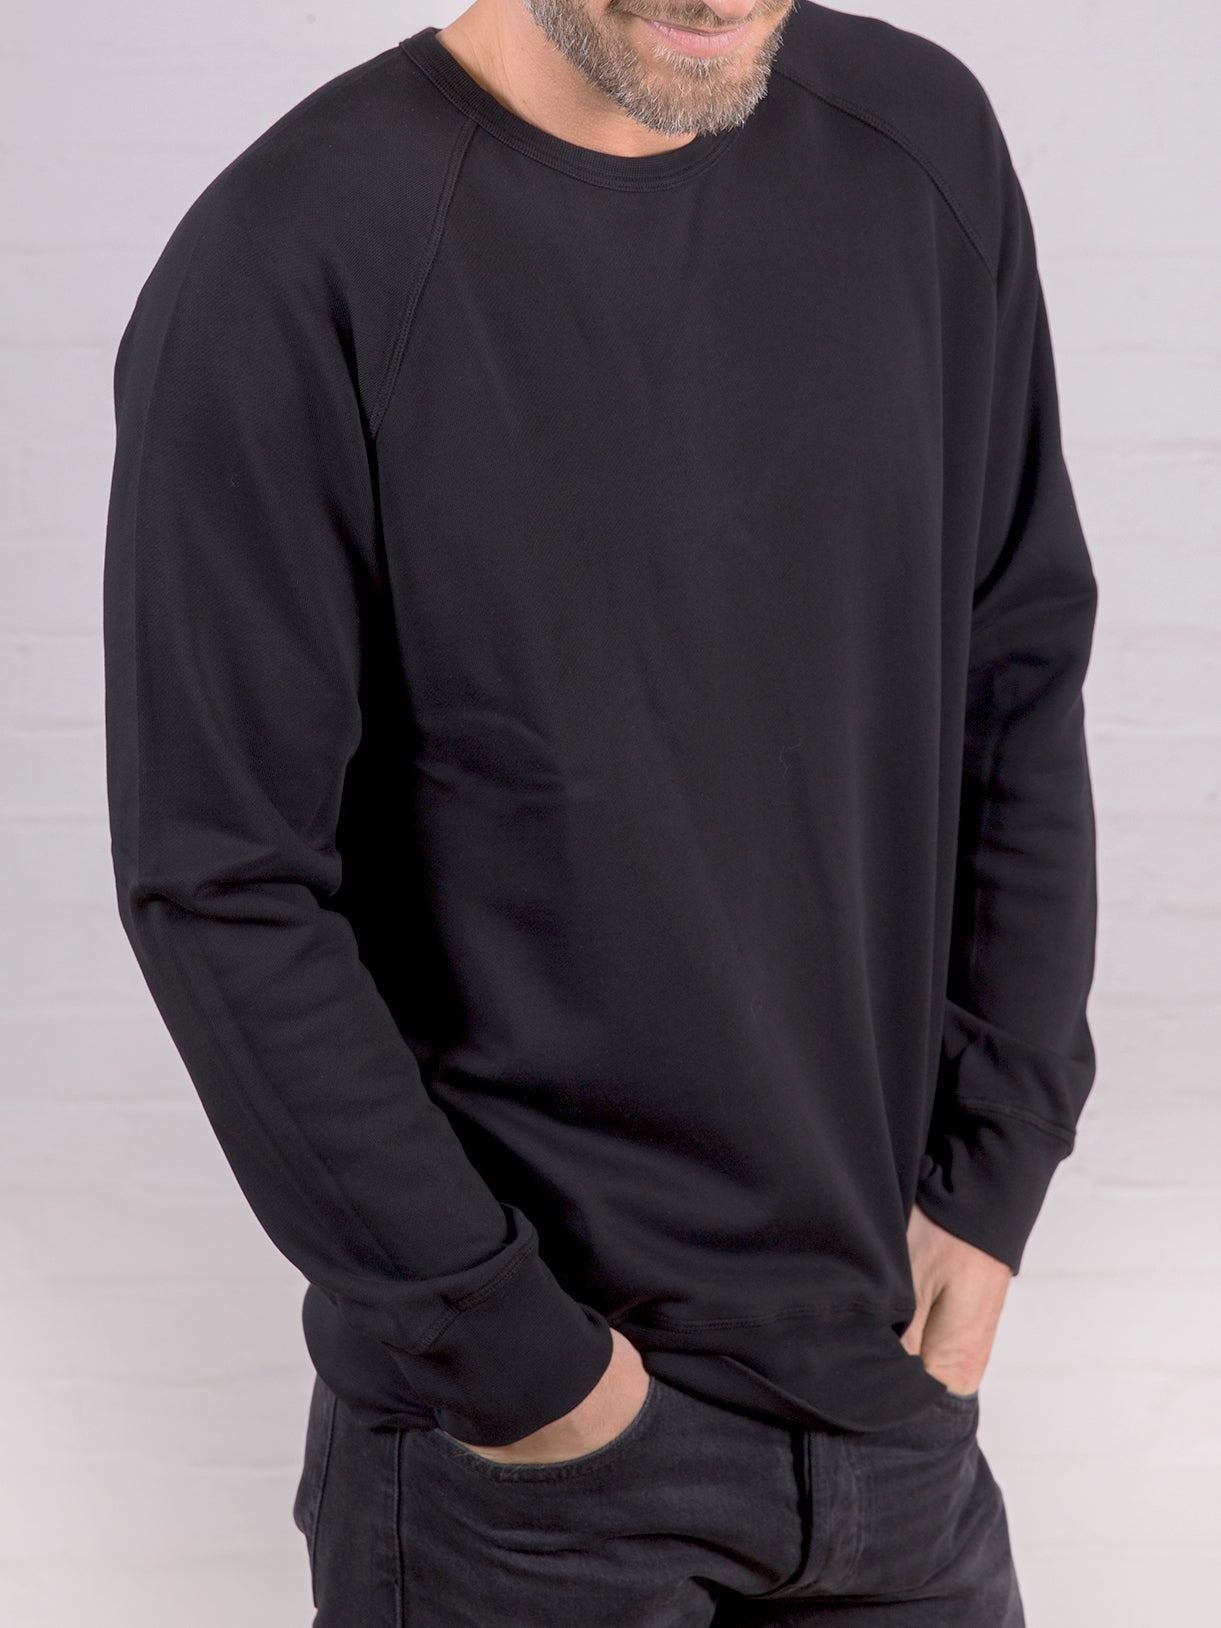 Men's Classic Sweatshirt Black